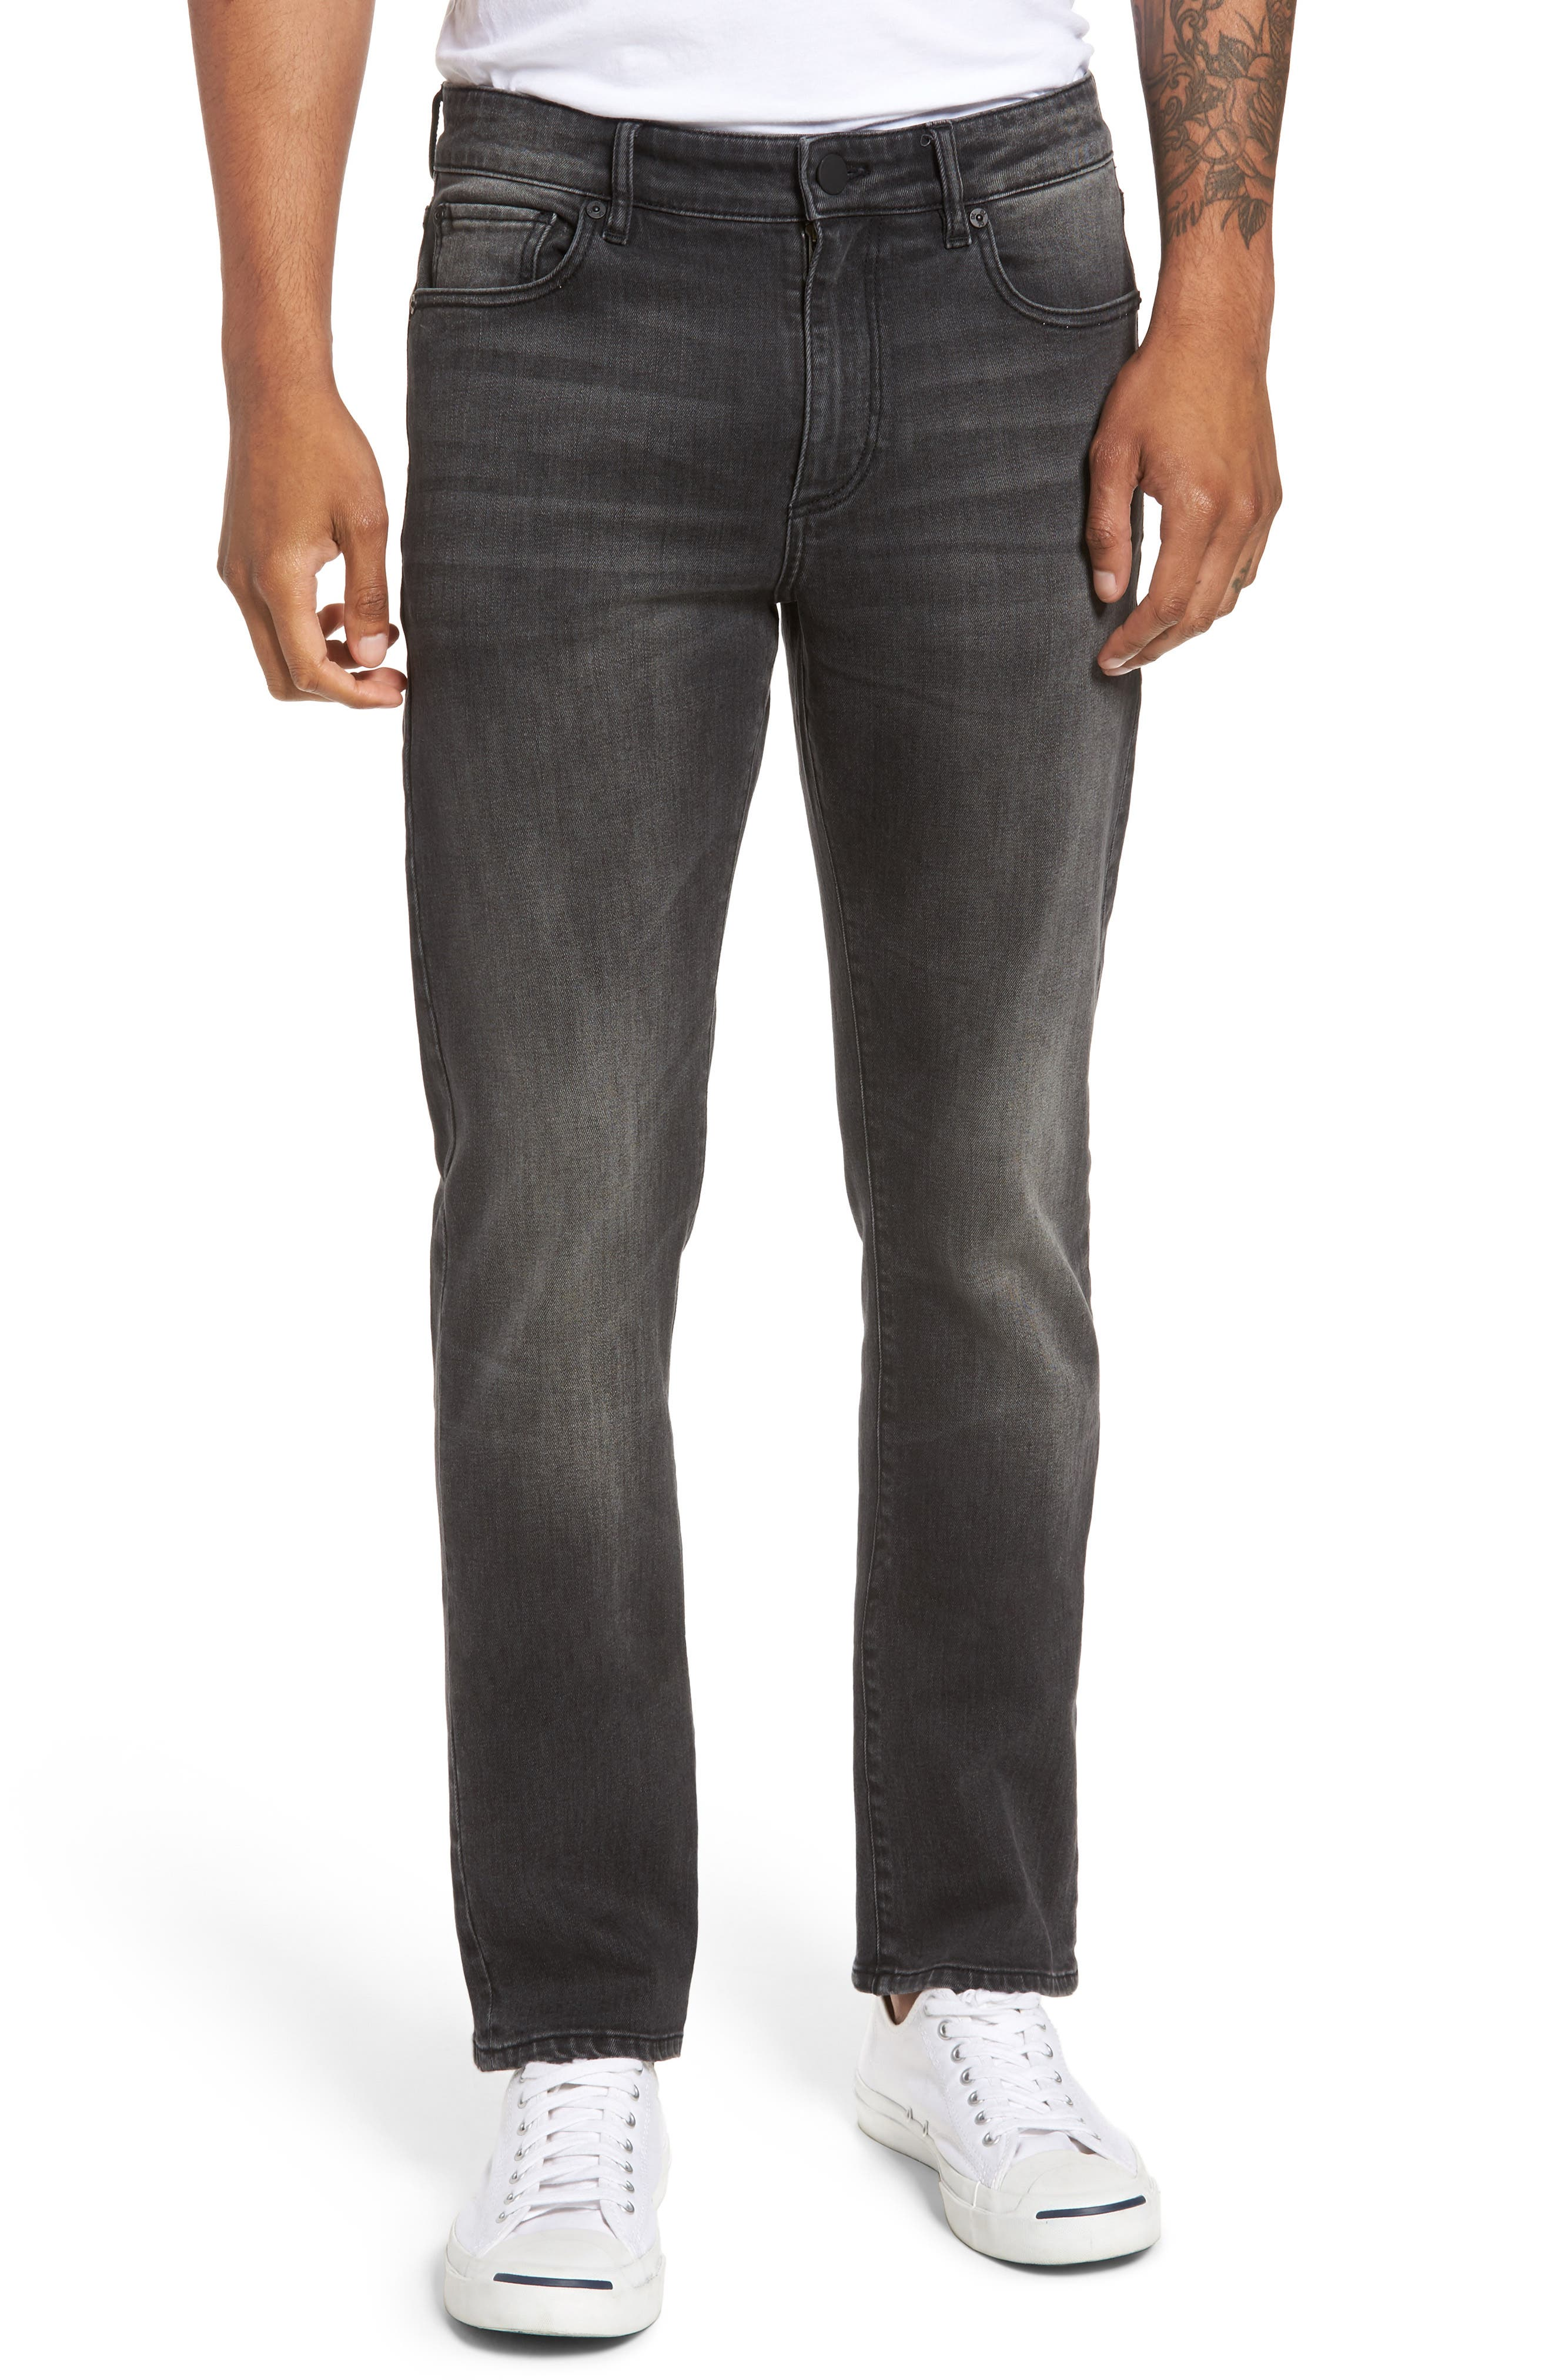 Russell Slim Straight Fit Jeans,                         Main,                         color, Hound